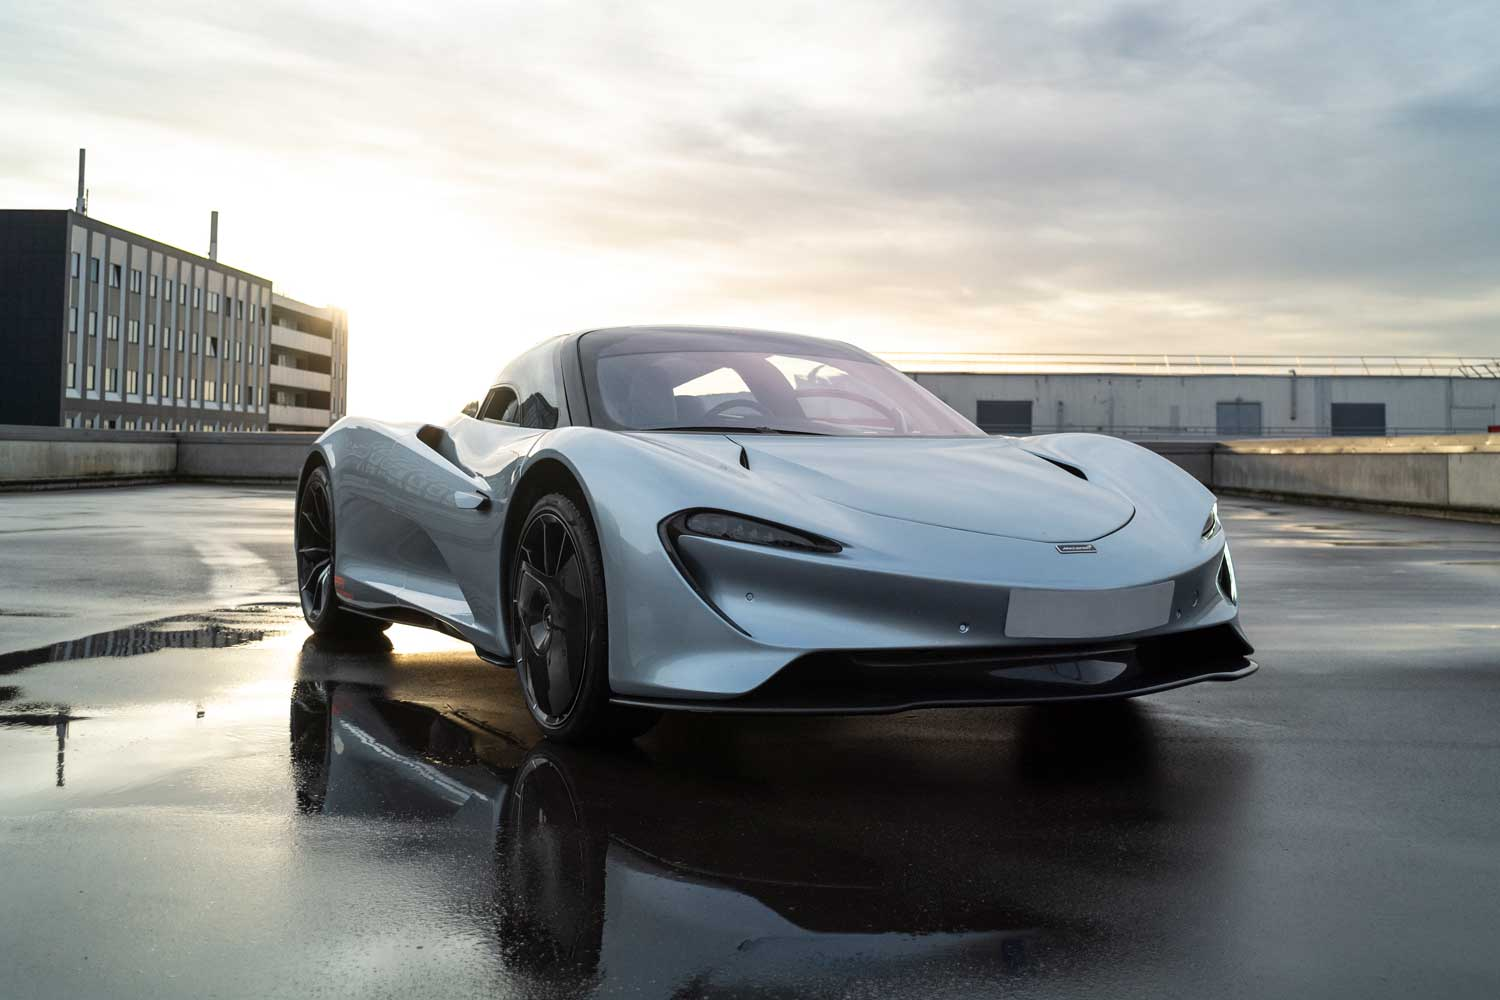 The McLaren Speedtail is powered by two engines, the M840T from the McLaren 720S and an electric powertrain, that together are capable of propelling the Speedtail at a crazy top speed of 250mph.